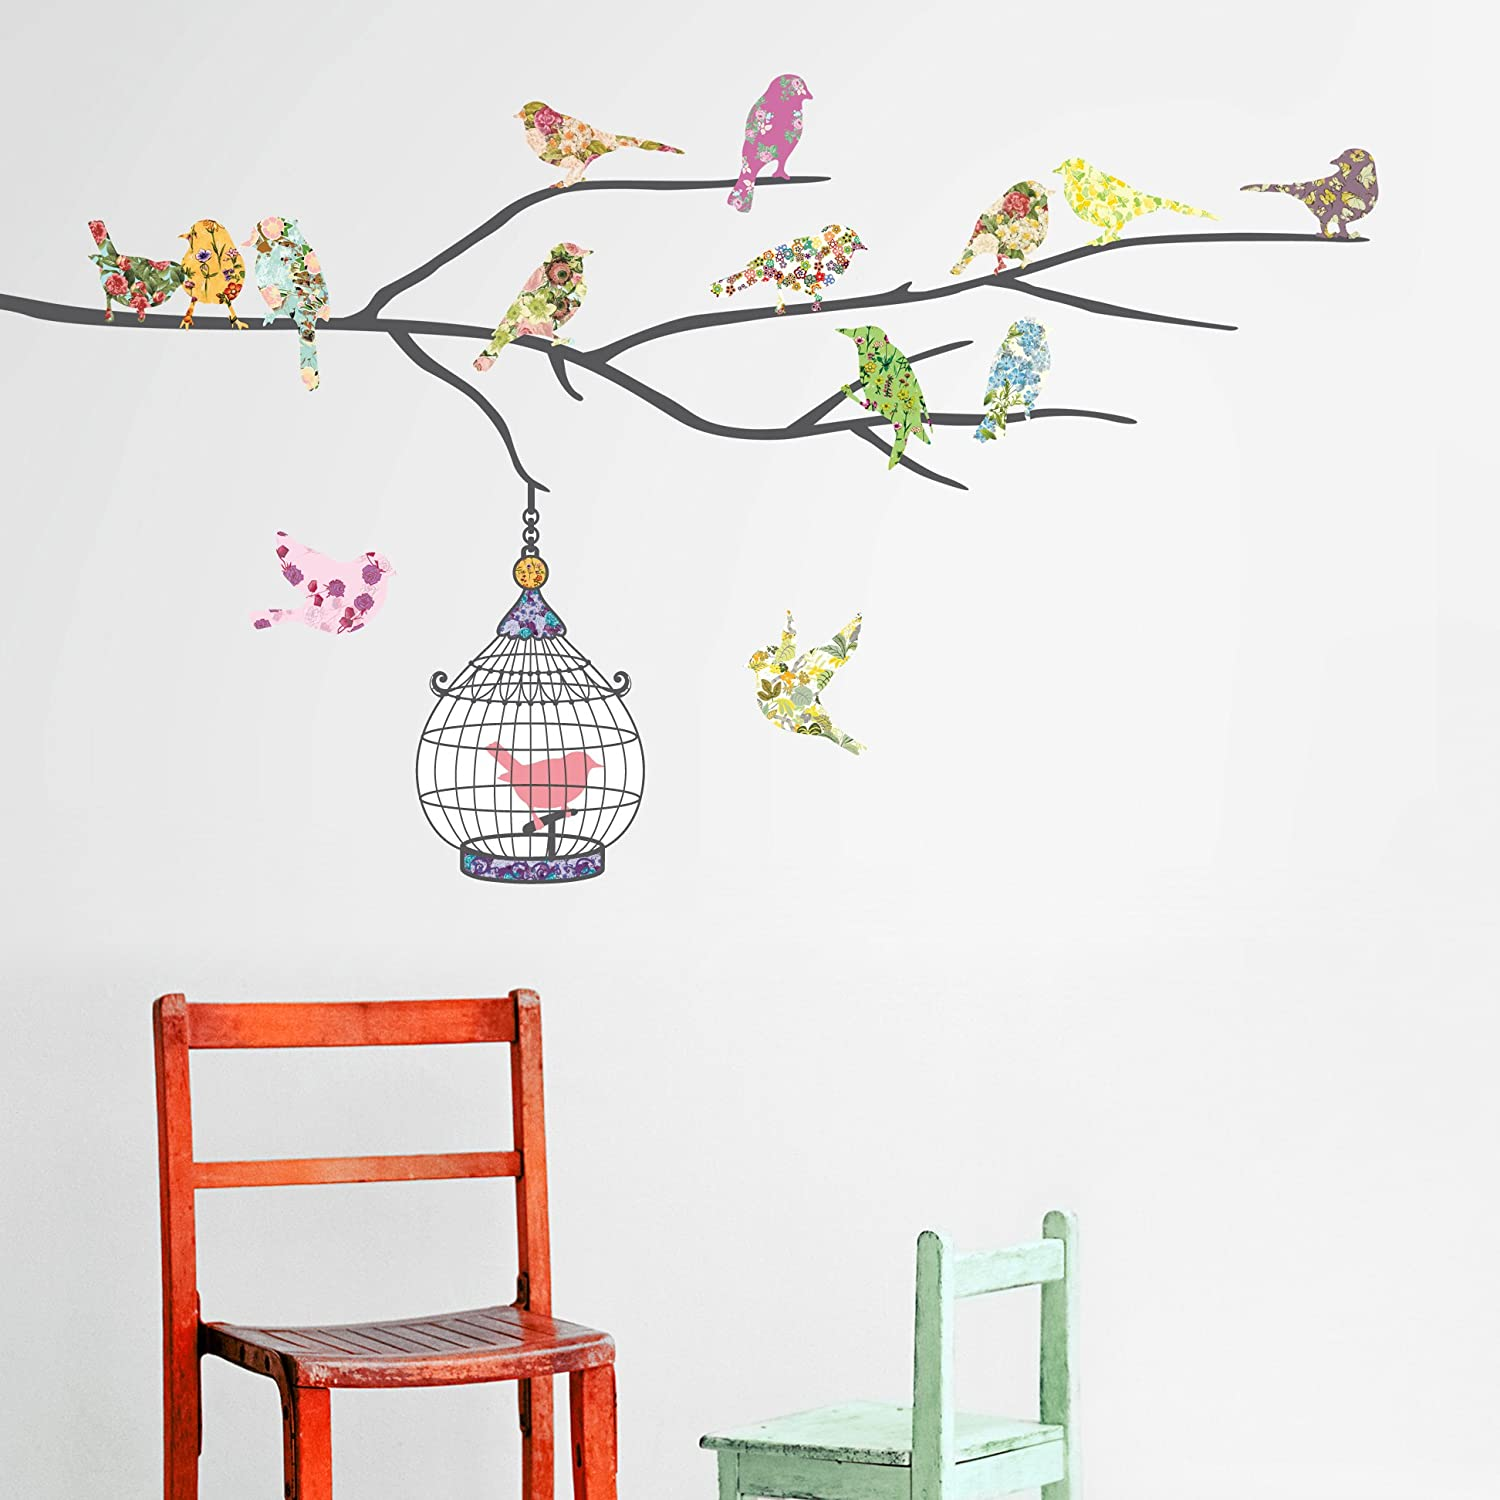 Decowall dw 1202 14 birds on a branch kids wall stickers wall decowall dw 1202 14 birds on a branch kids wall stickers wall decals peel and stick removable wall stickers for kids nursery bedroom living room amipublicfo Images